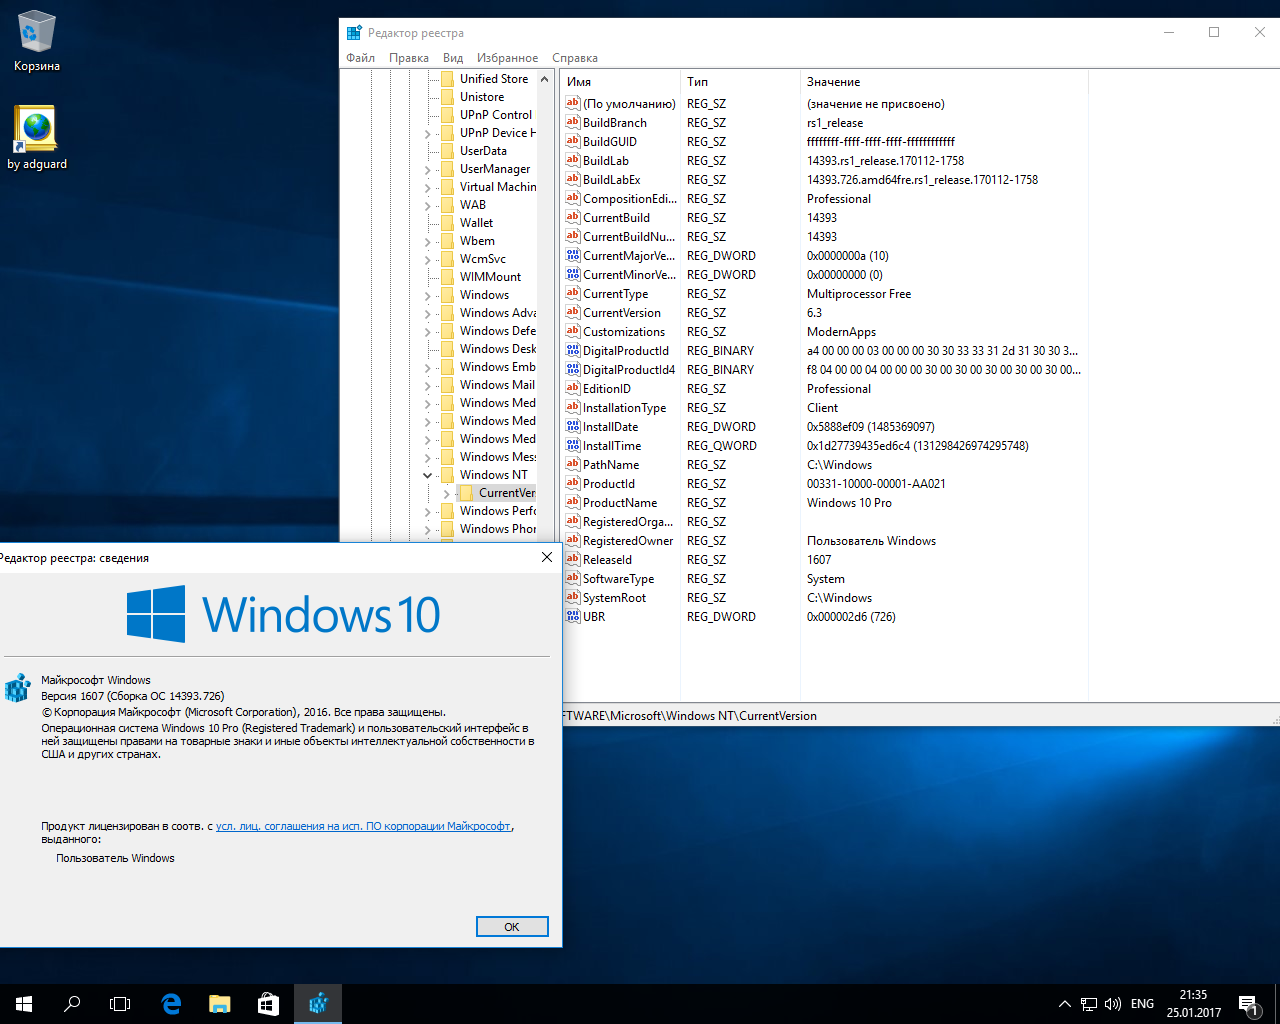 Torrent + Direct - Windows 10, Version 1607 With Update [14393 726